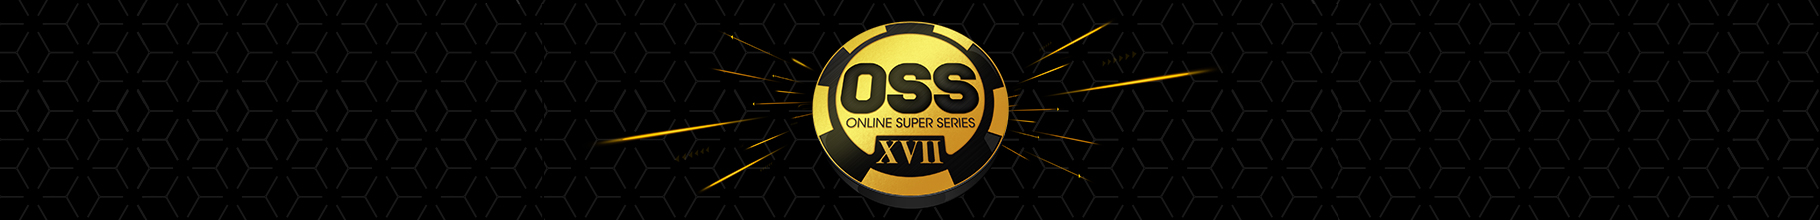 Online Super Series - OSS Poker